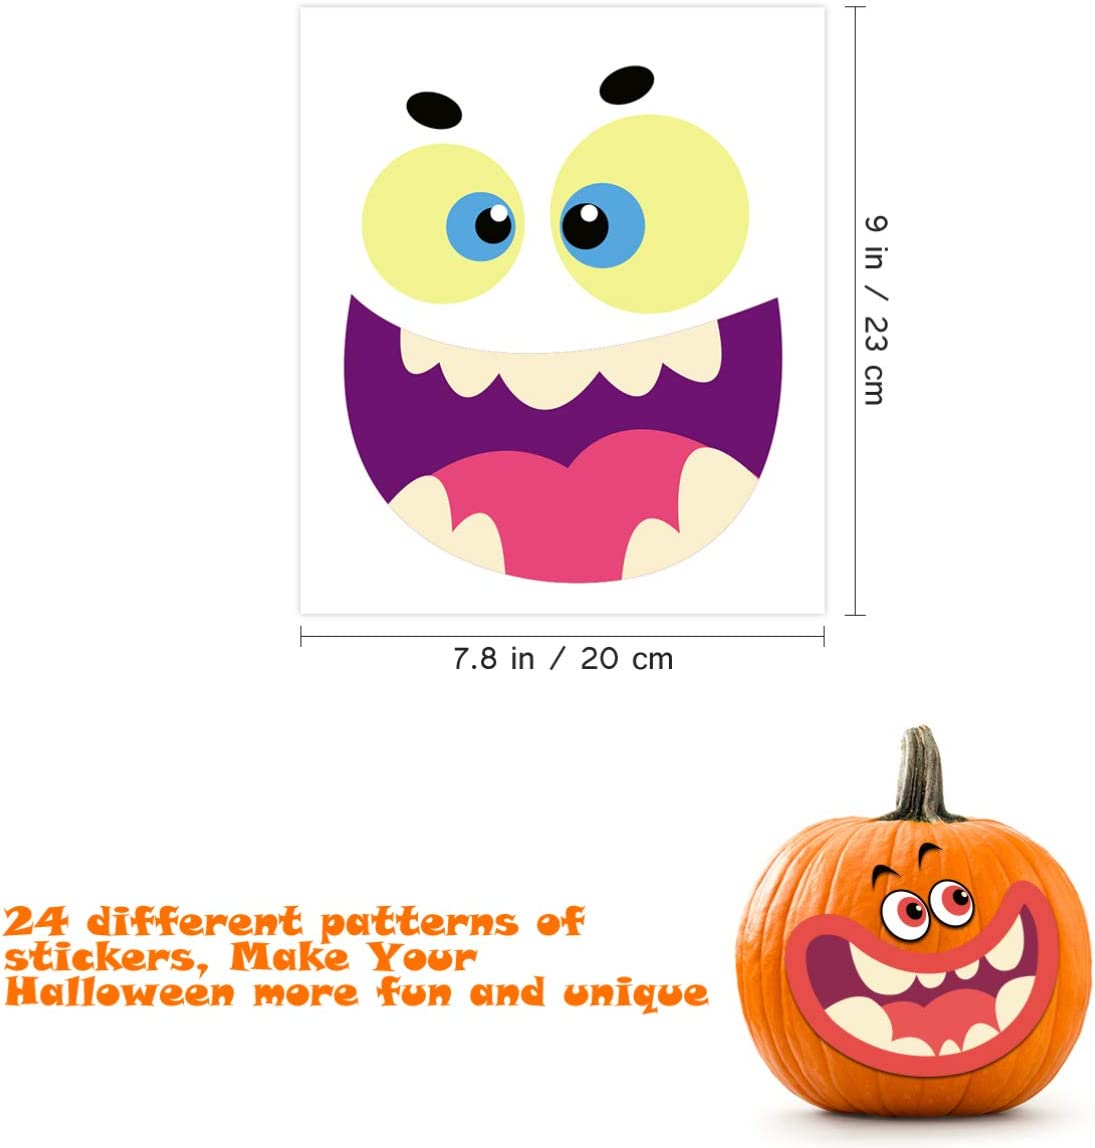 Pumpkin Decorating Sticker Halloween Sticker Decoration for DIY Halloween Pumpkin Decoration 24 Sheets